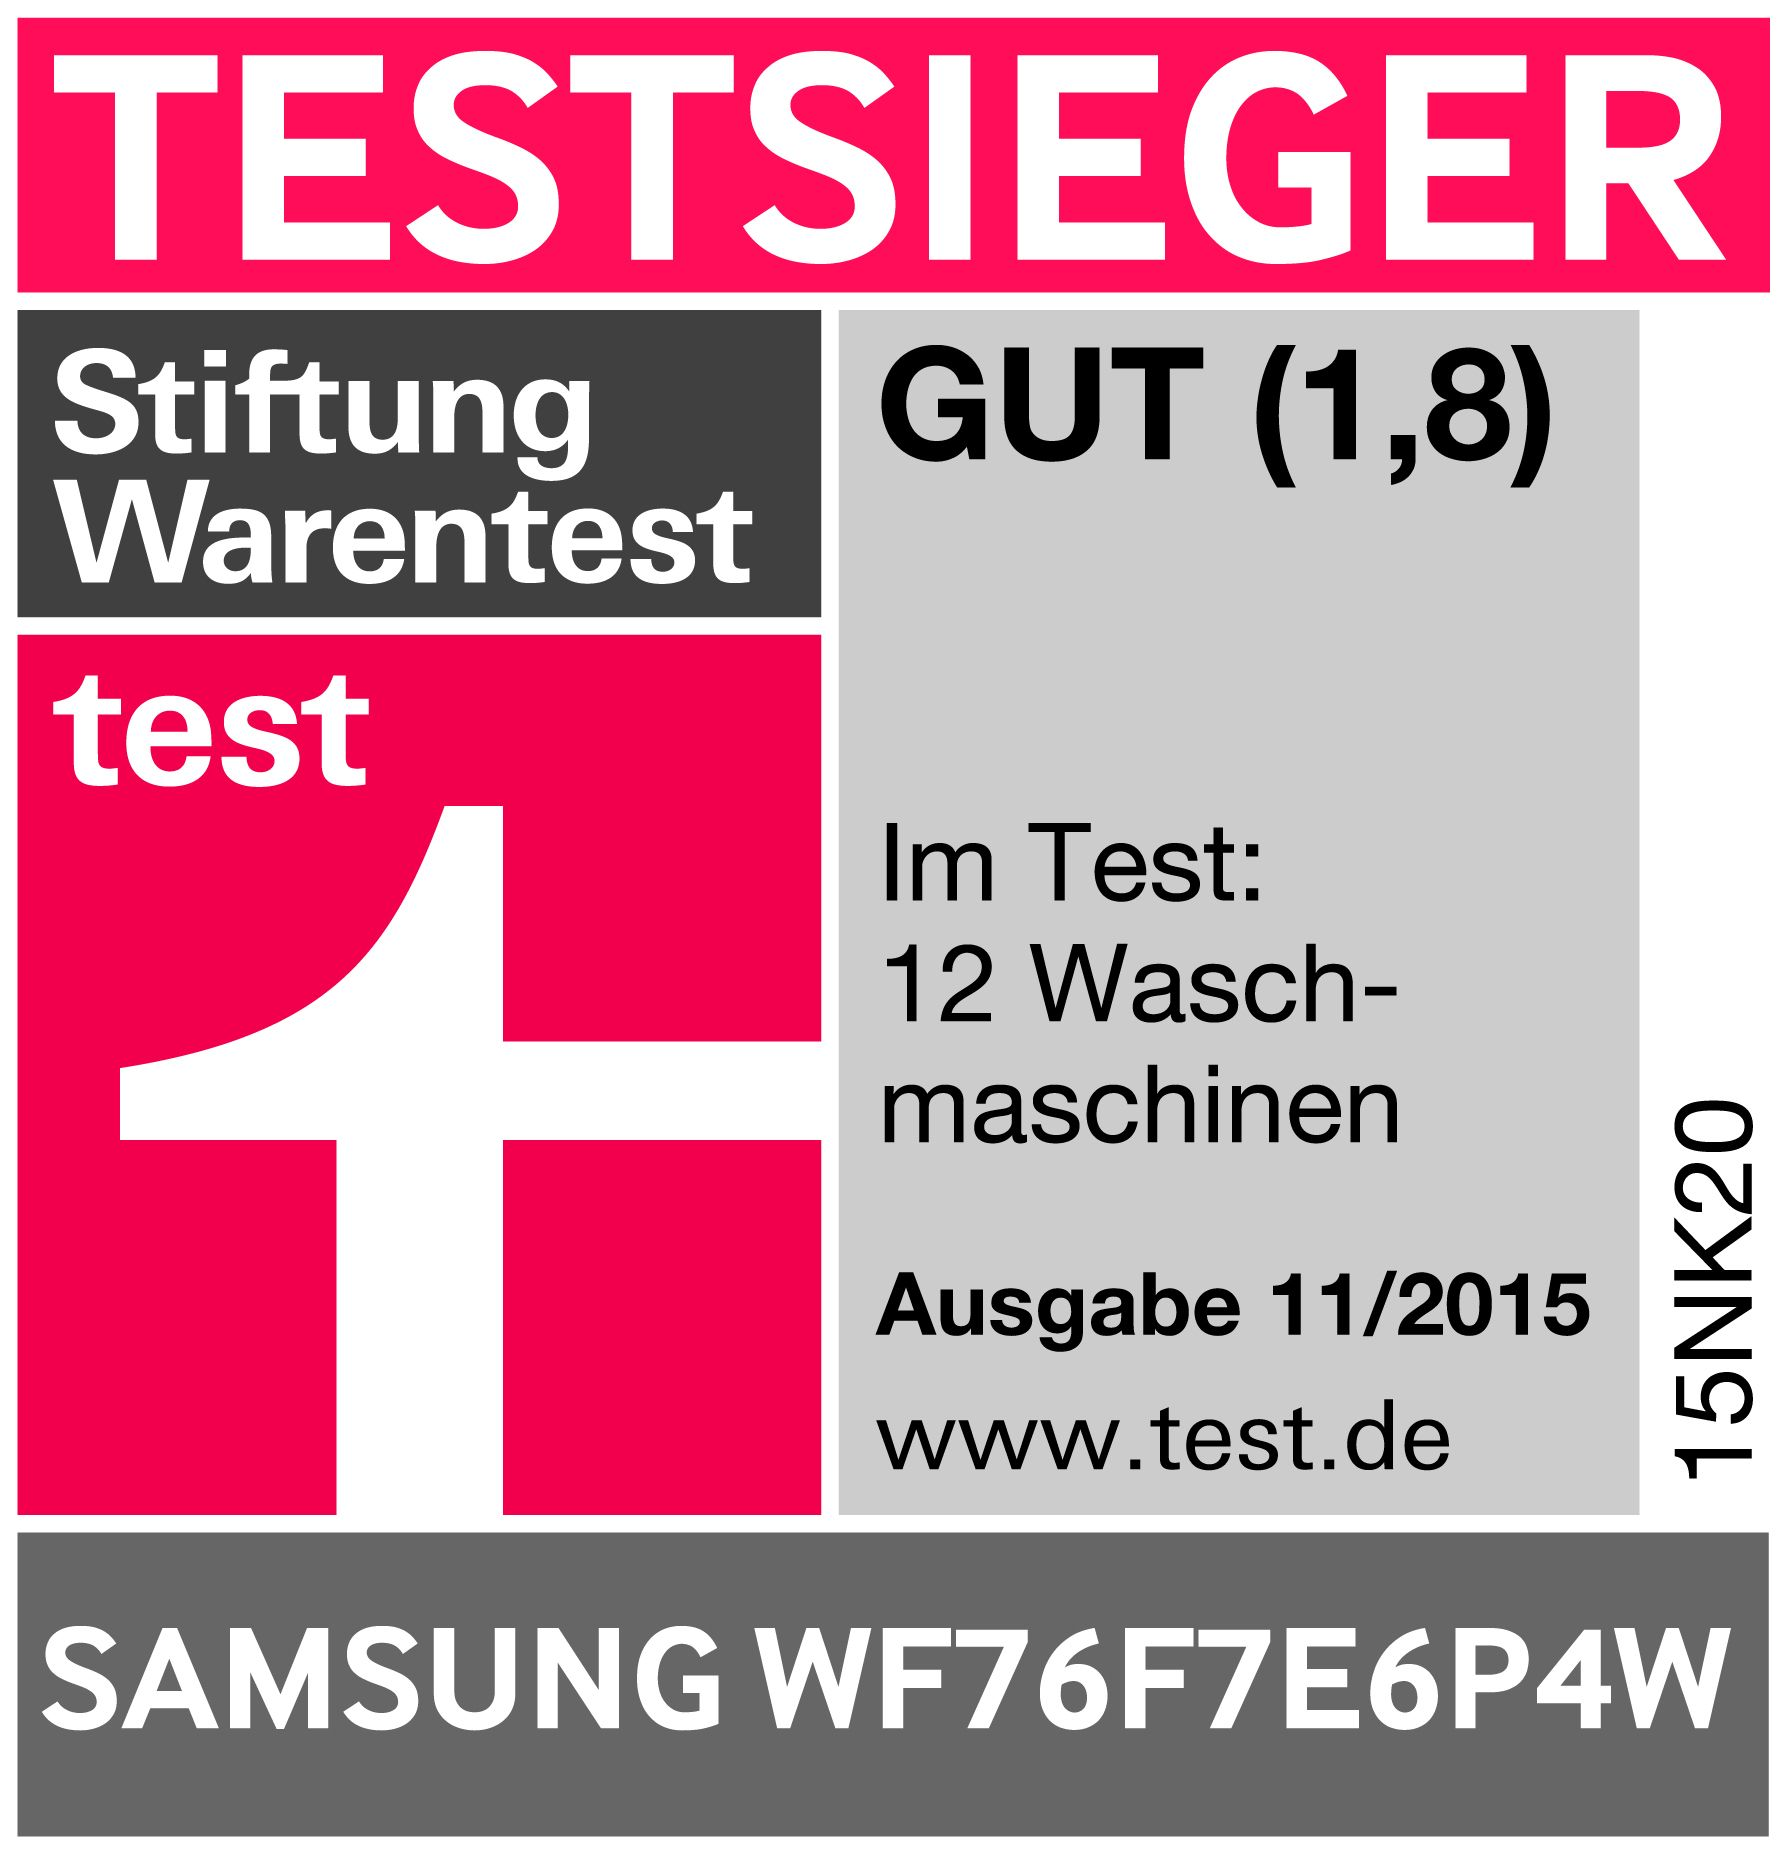 waschmaschinen im test test samsung macht das rennen. Black Bedroom Furniture Sets. Home Design Ideas